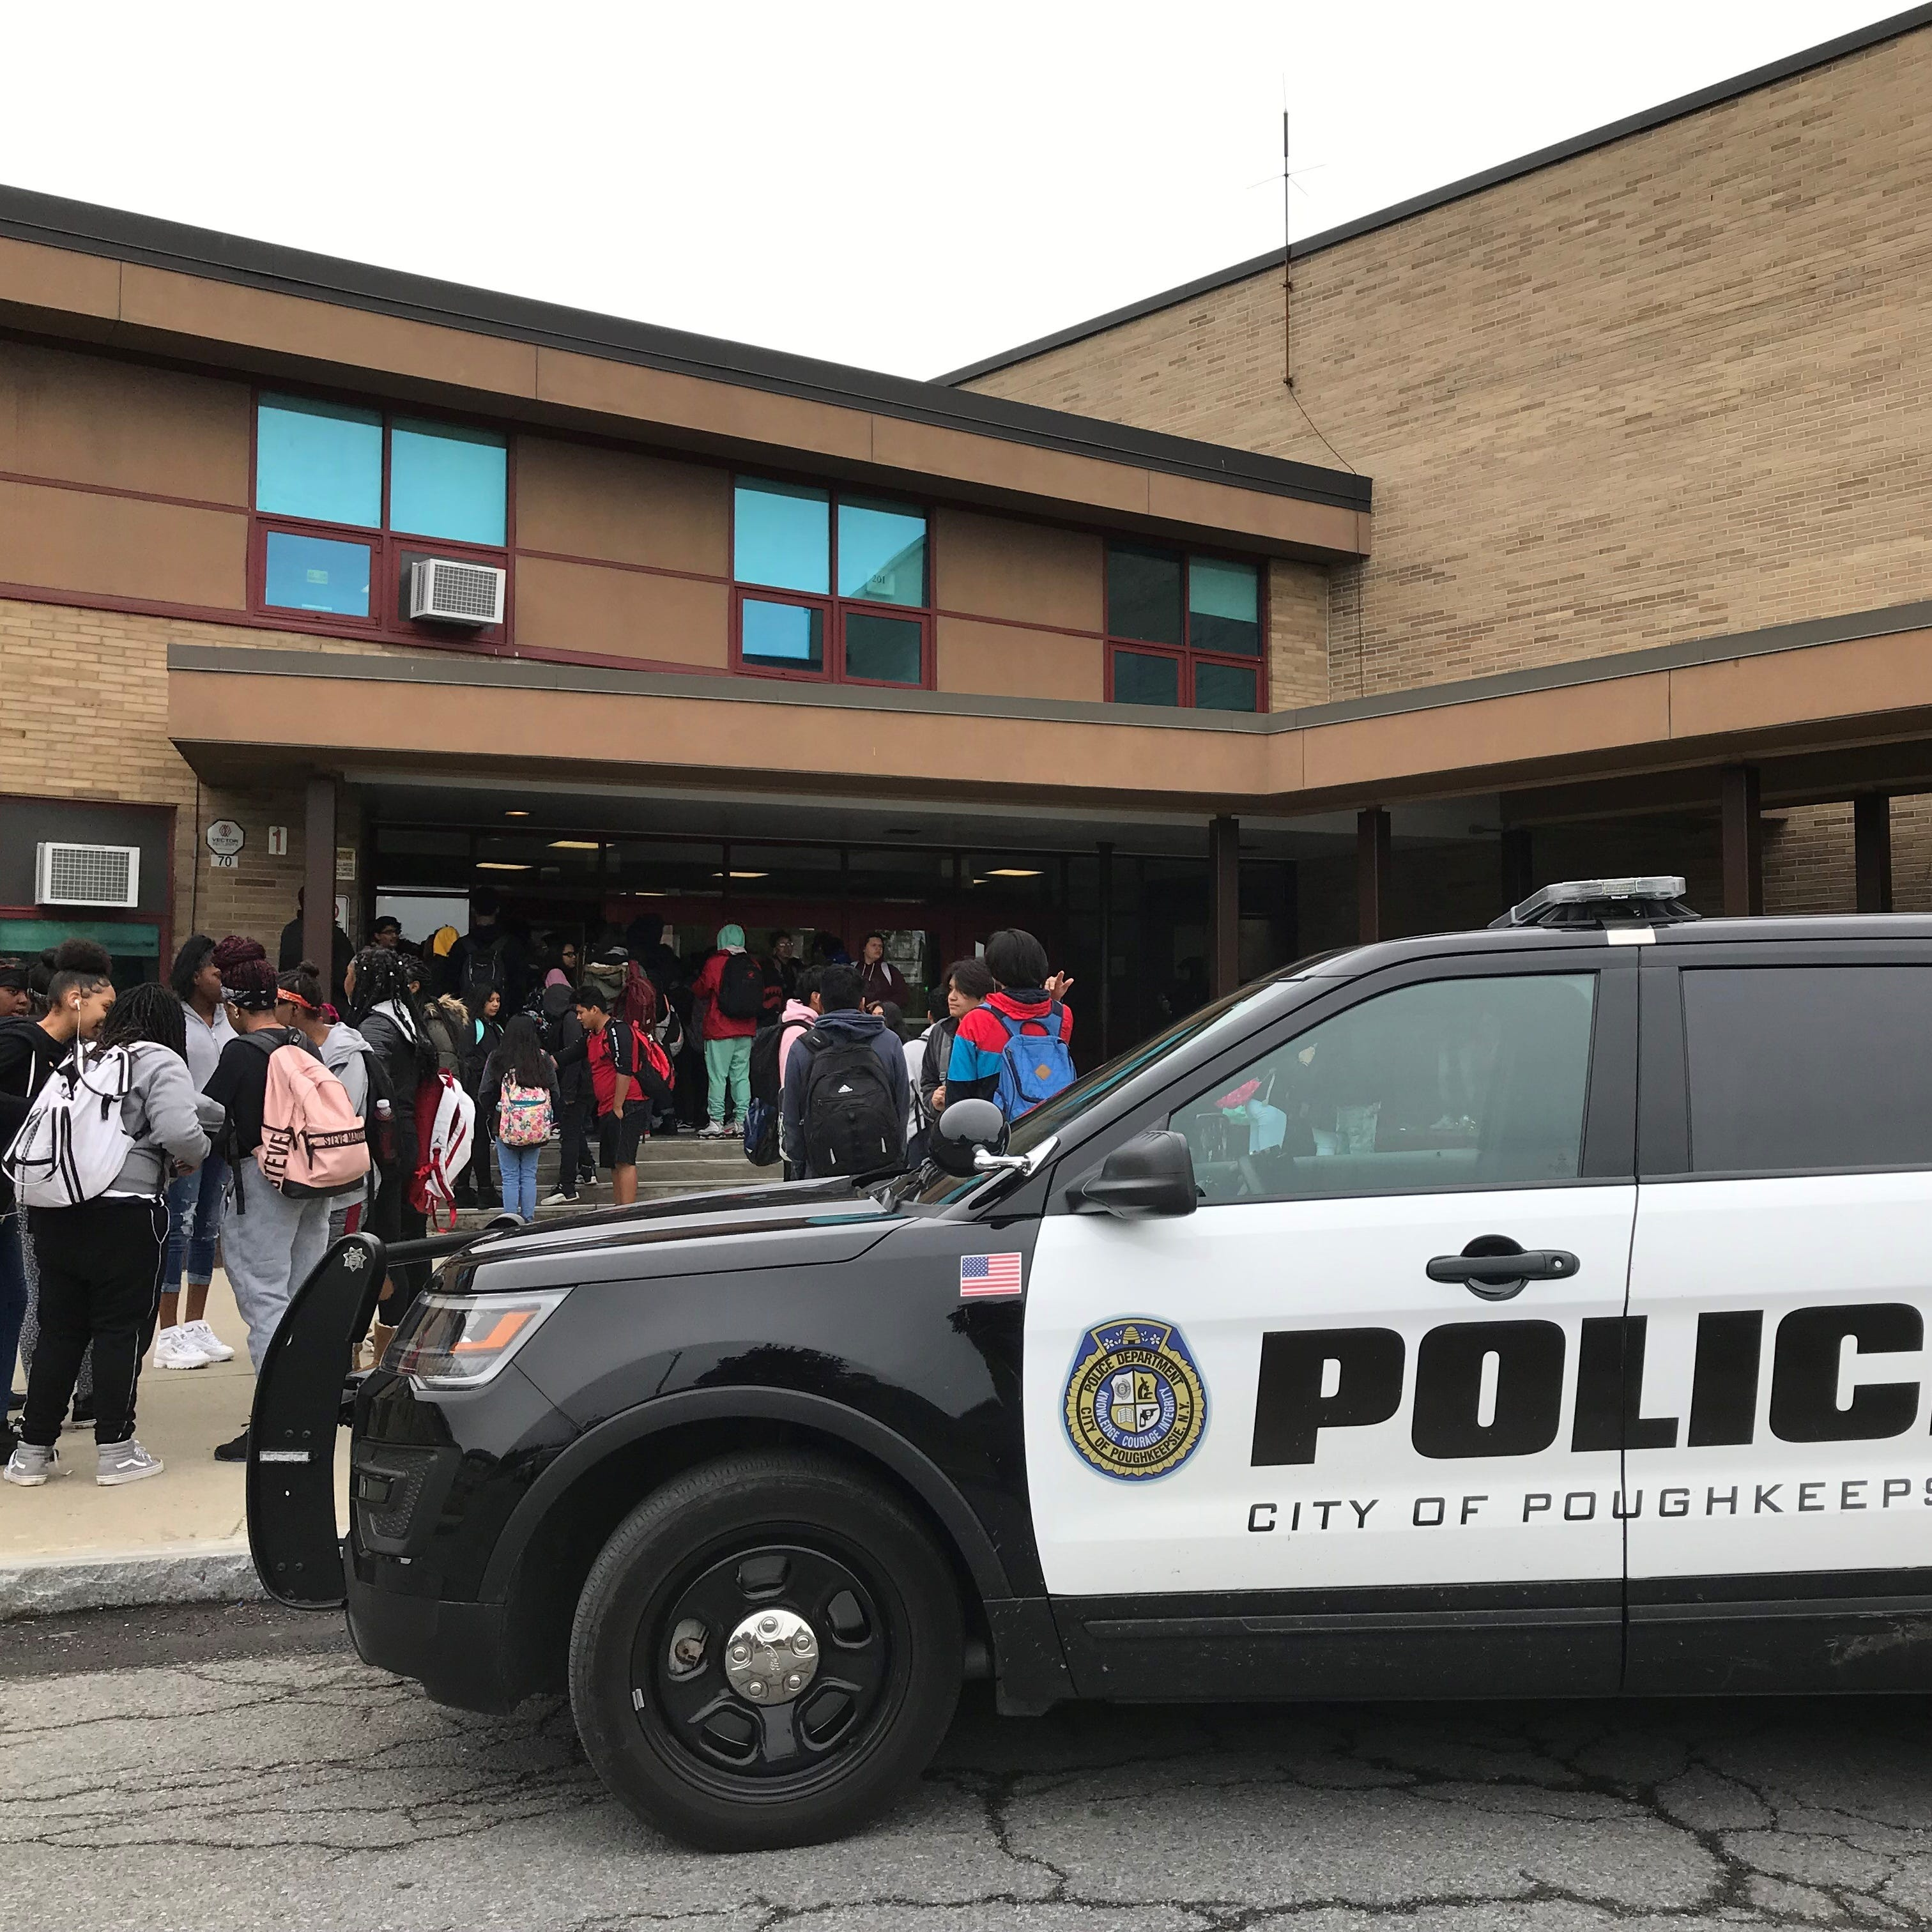 Poughkeepsie High School was on lockdown for less than two hours